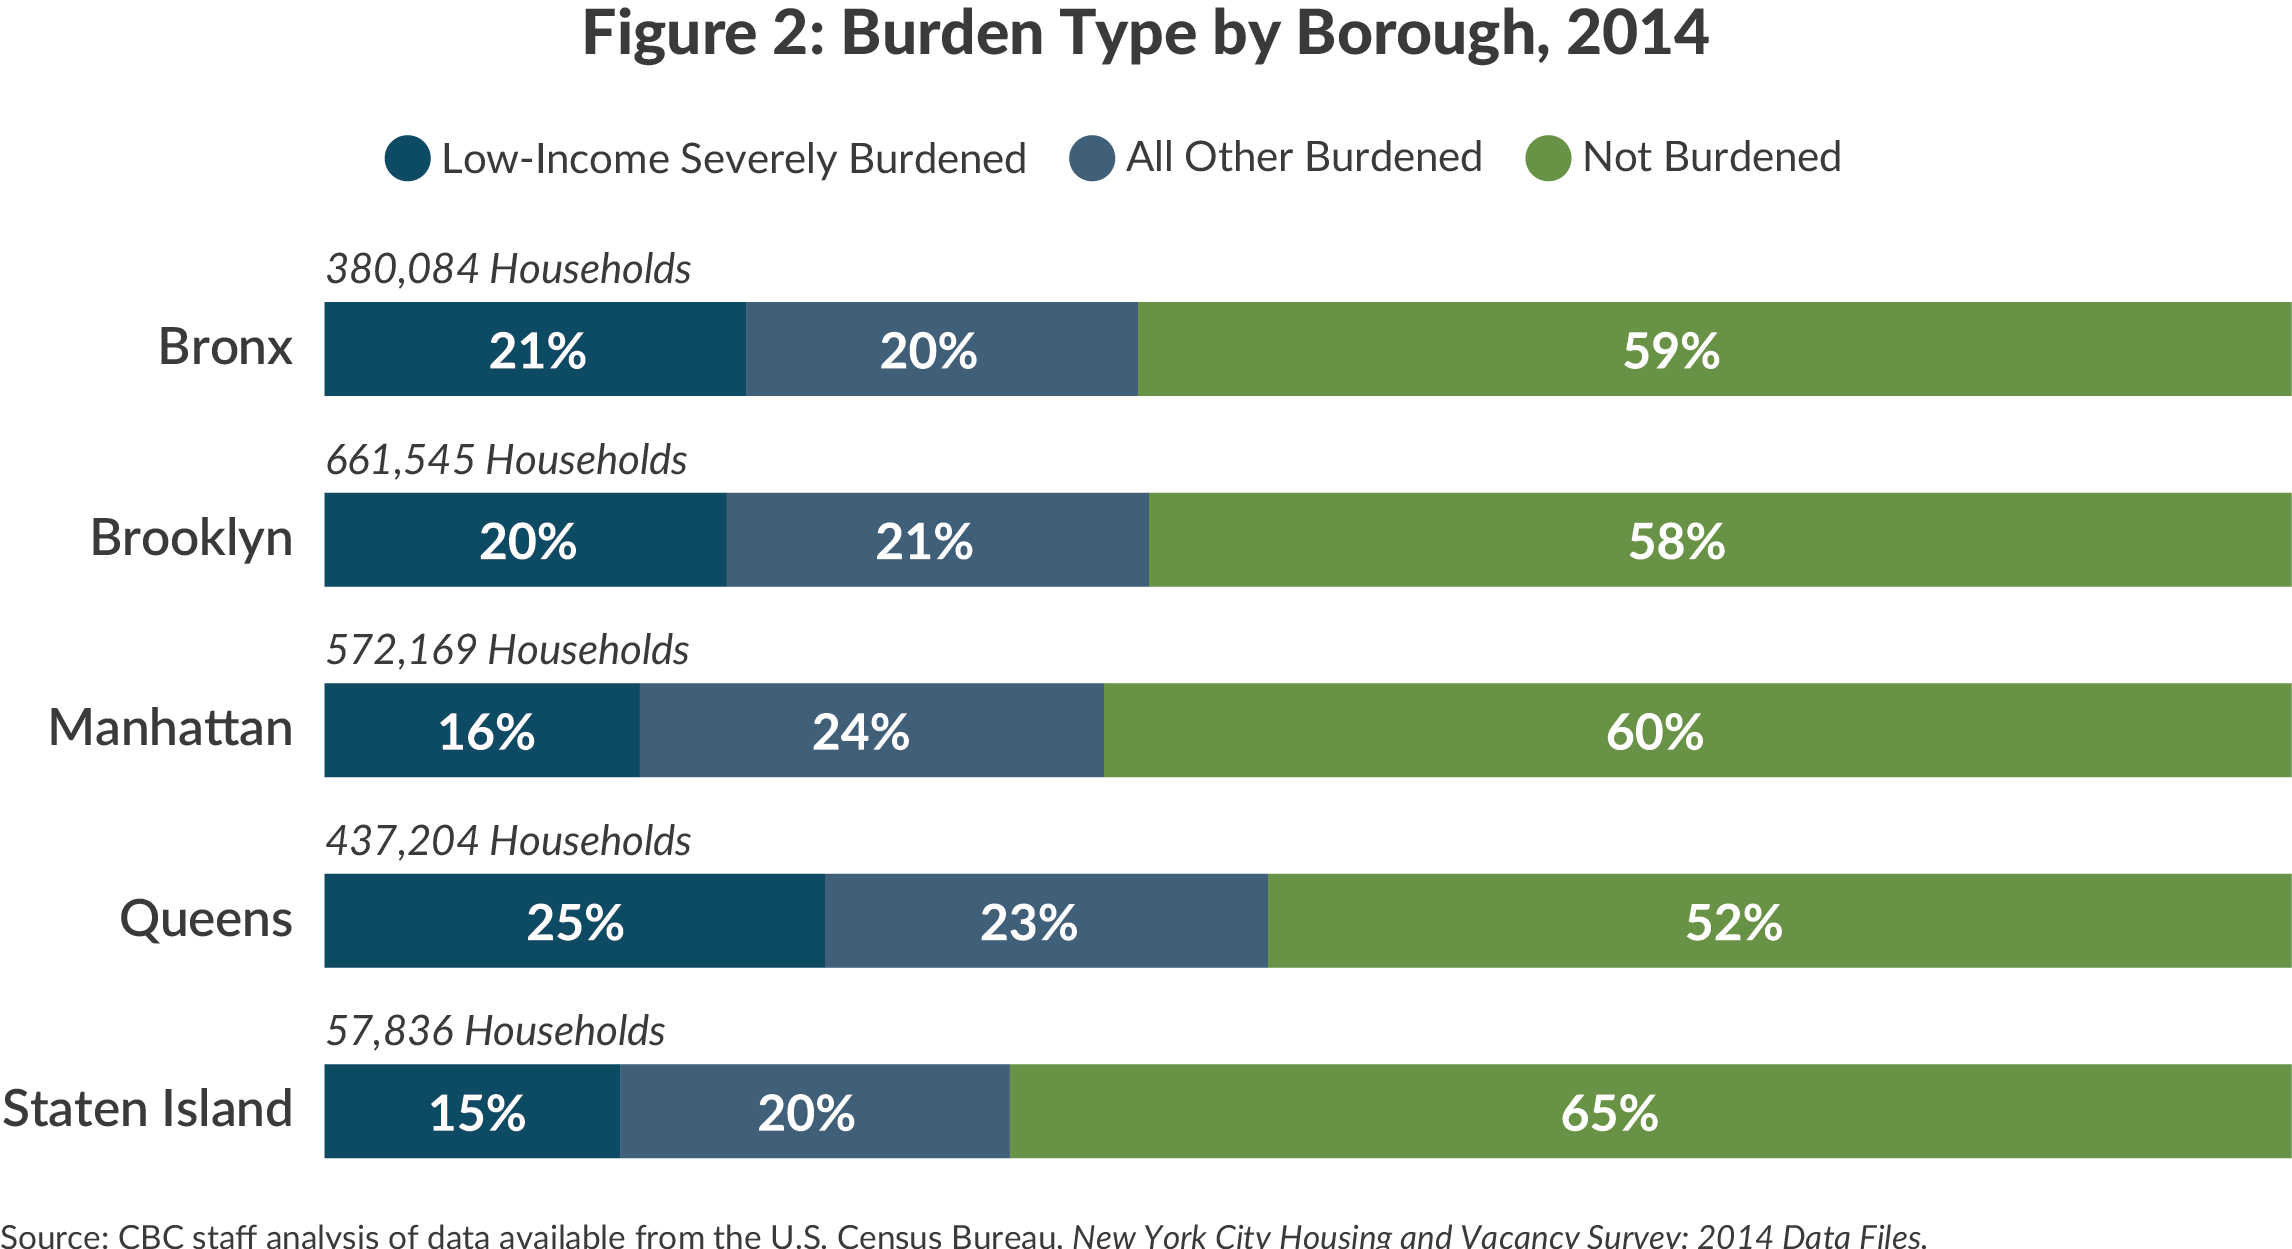 Figure 2: Burden Type by Borough, 2014